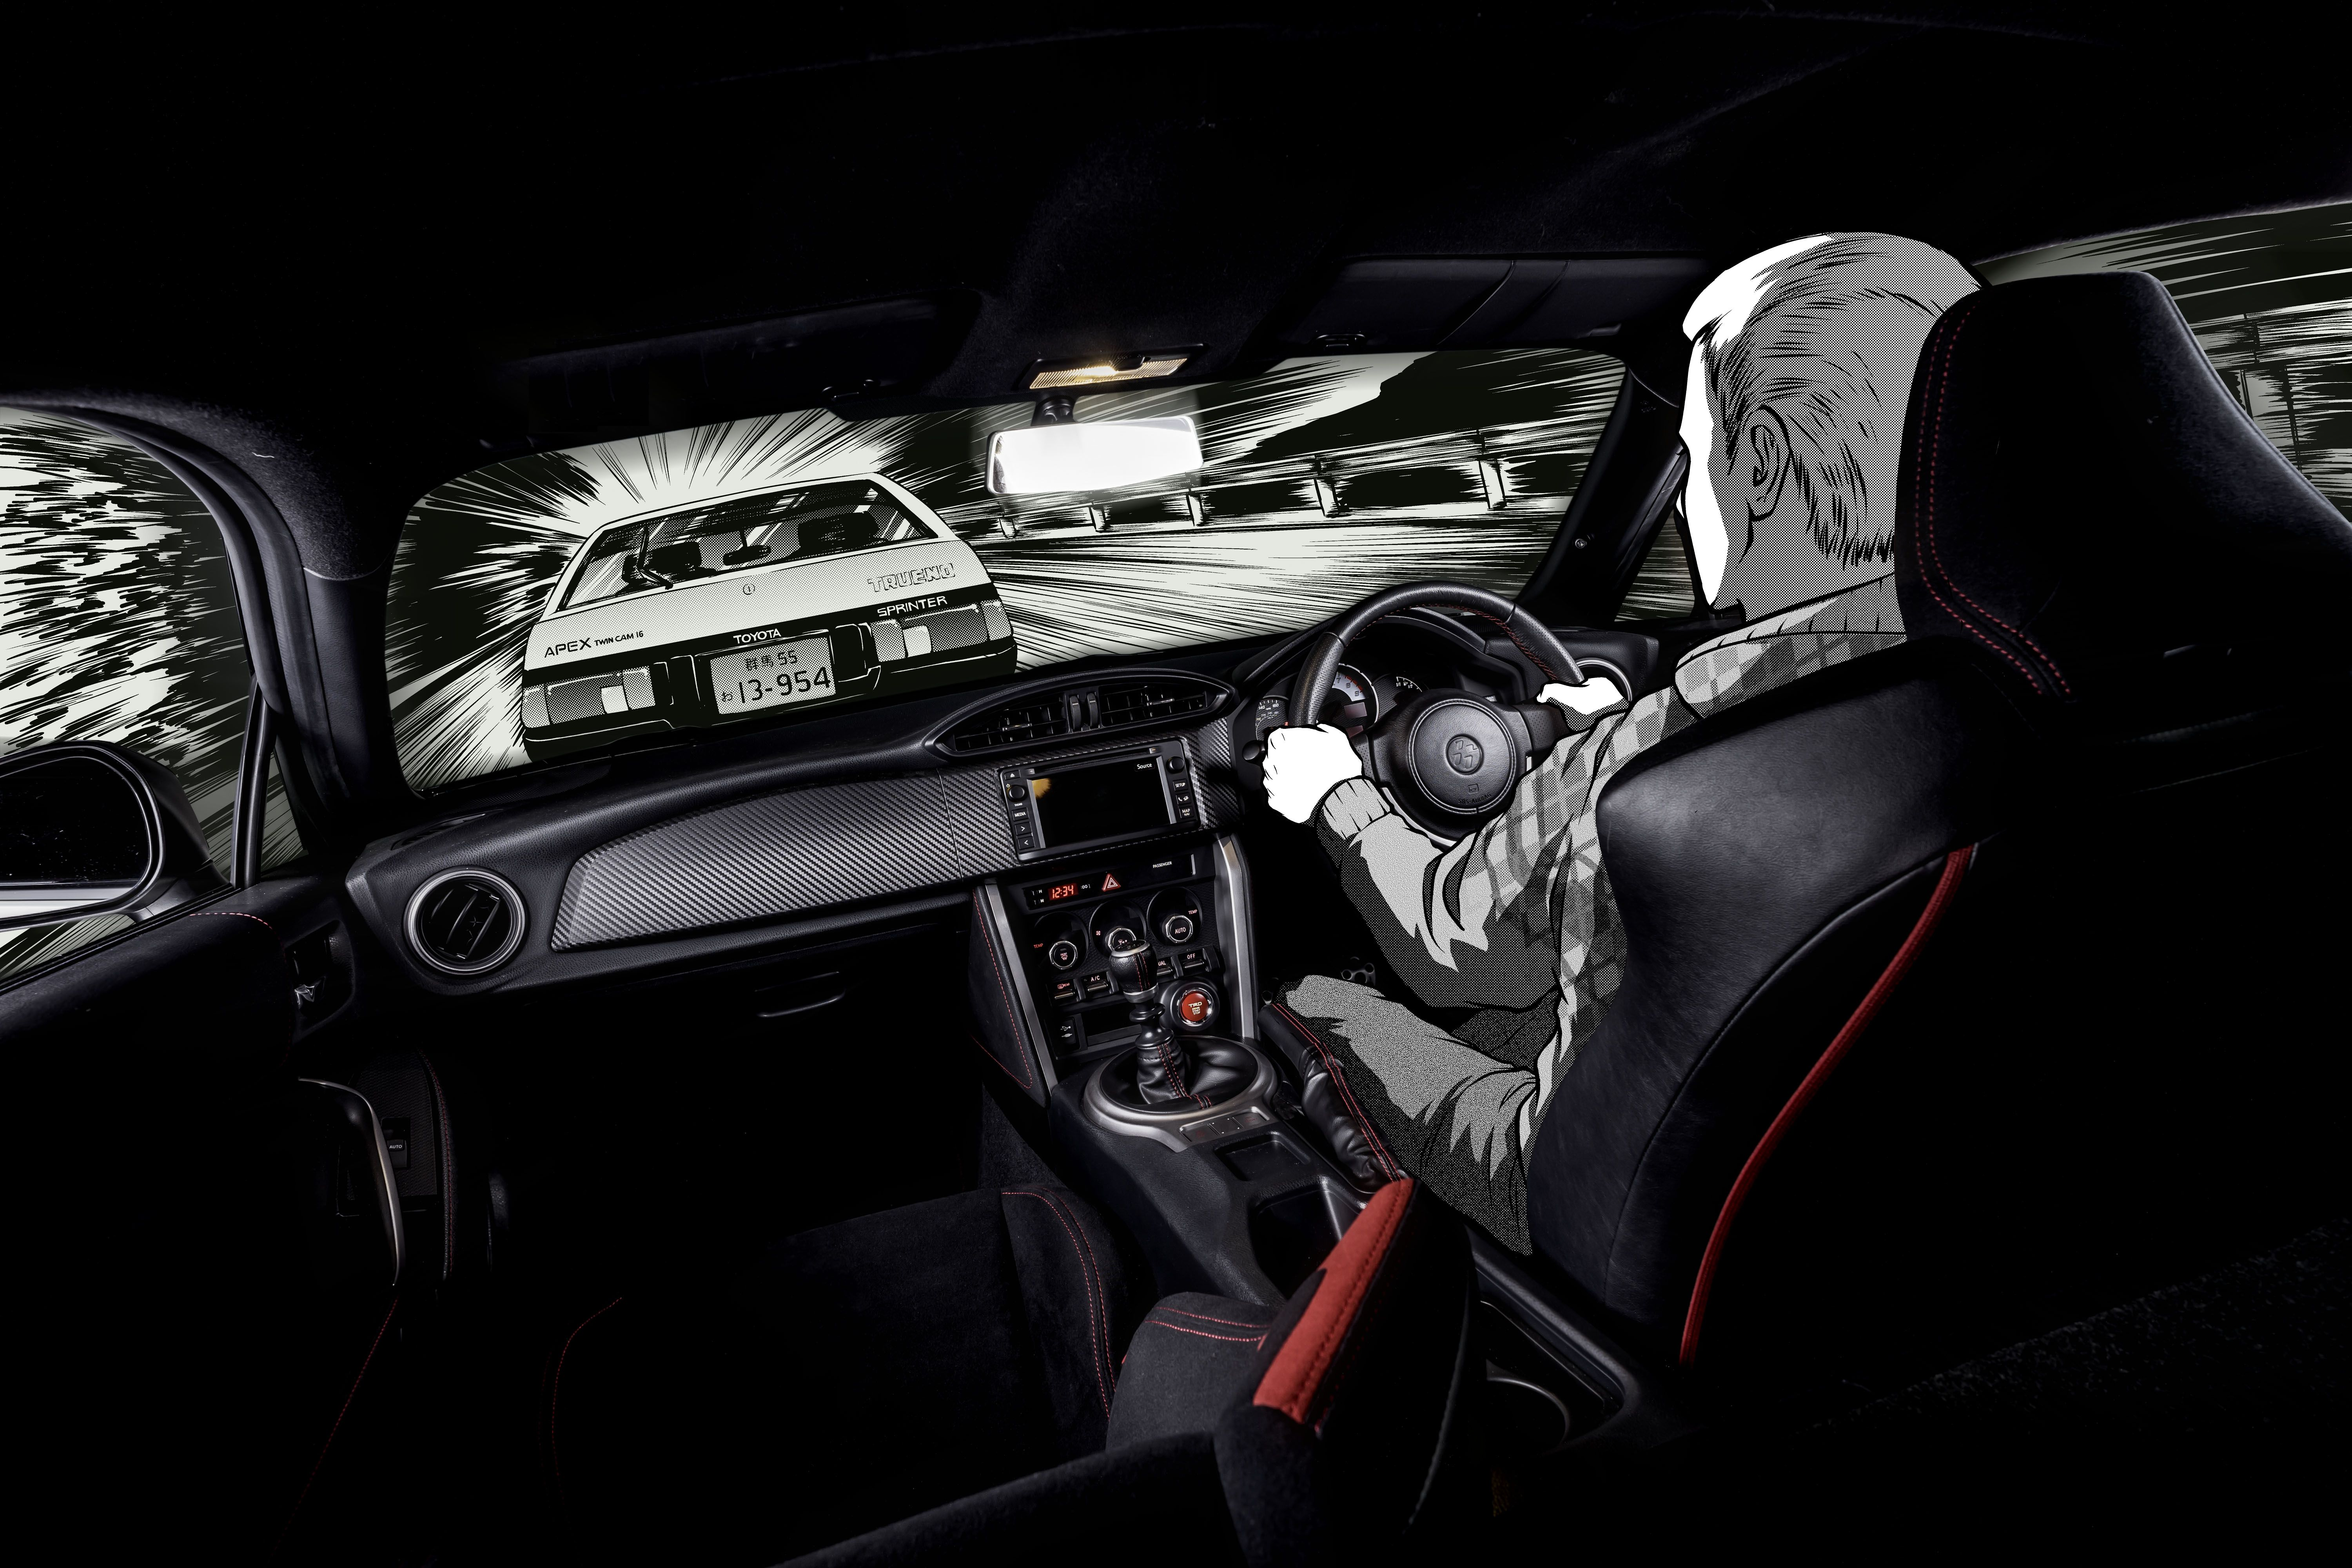 Toyota Gt86 Initial D Concept Modern Day Hachiroku Image